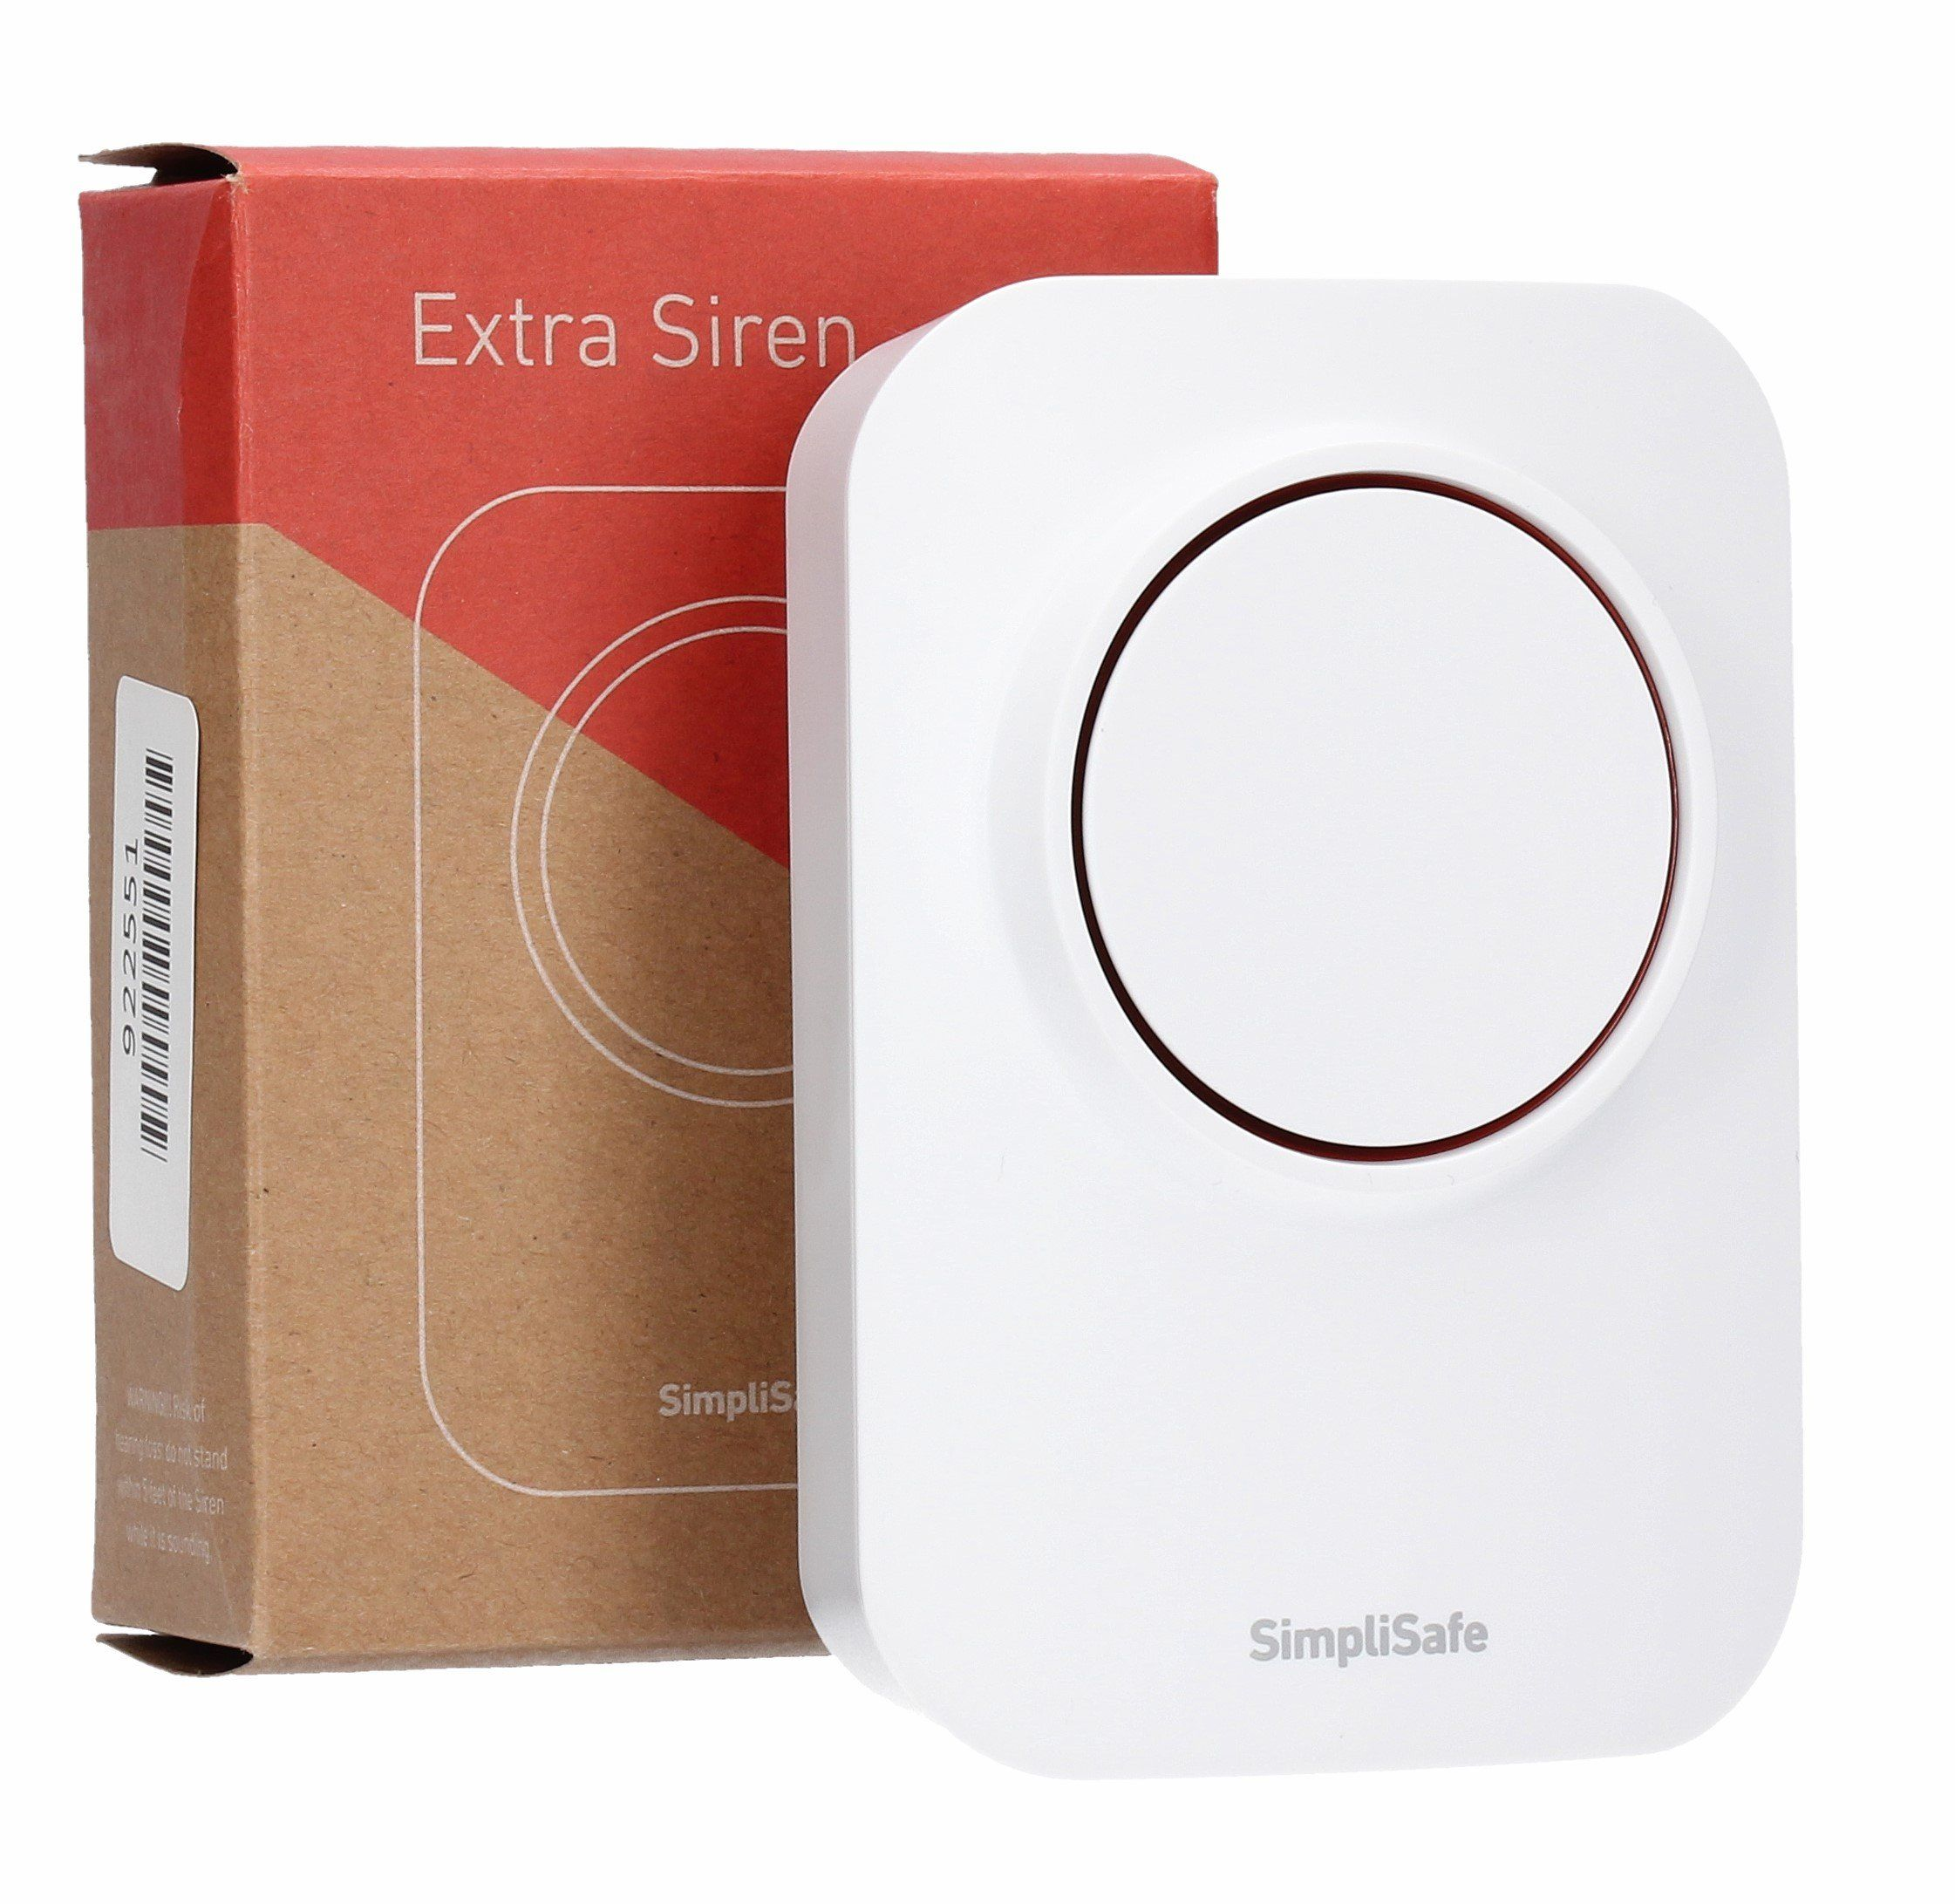 Simplisafe Extra Siren New Version 2 Generation Read More At The Image Link This Is An Affiliate Link In 2020 Simplisafe Home Security Systems Security System